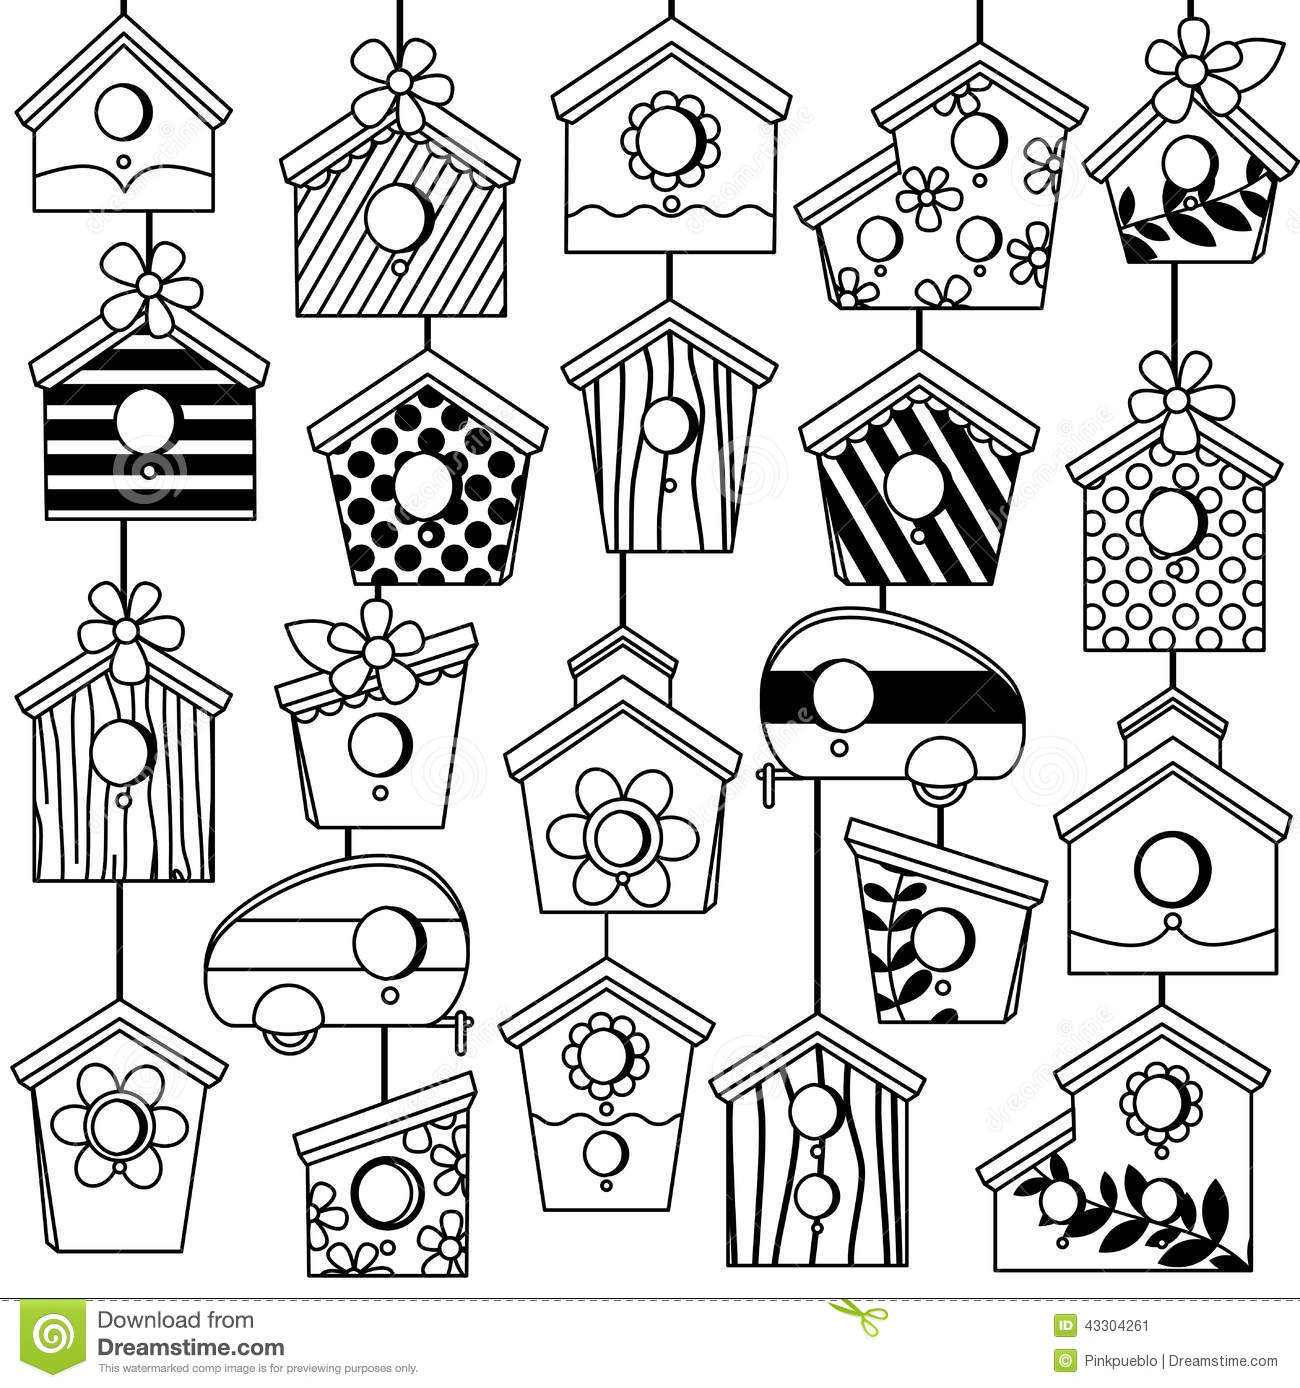 Christmas Present Drawing together with Hanging Upsidedown From A Tree 270075654 as well Stock Image City Dome Drawing Architecture Image20440801 furthermore Beforethebottle wordpress moreover Police Coloring Page 14. on cartoon houses